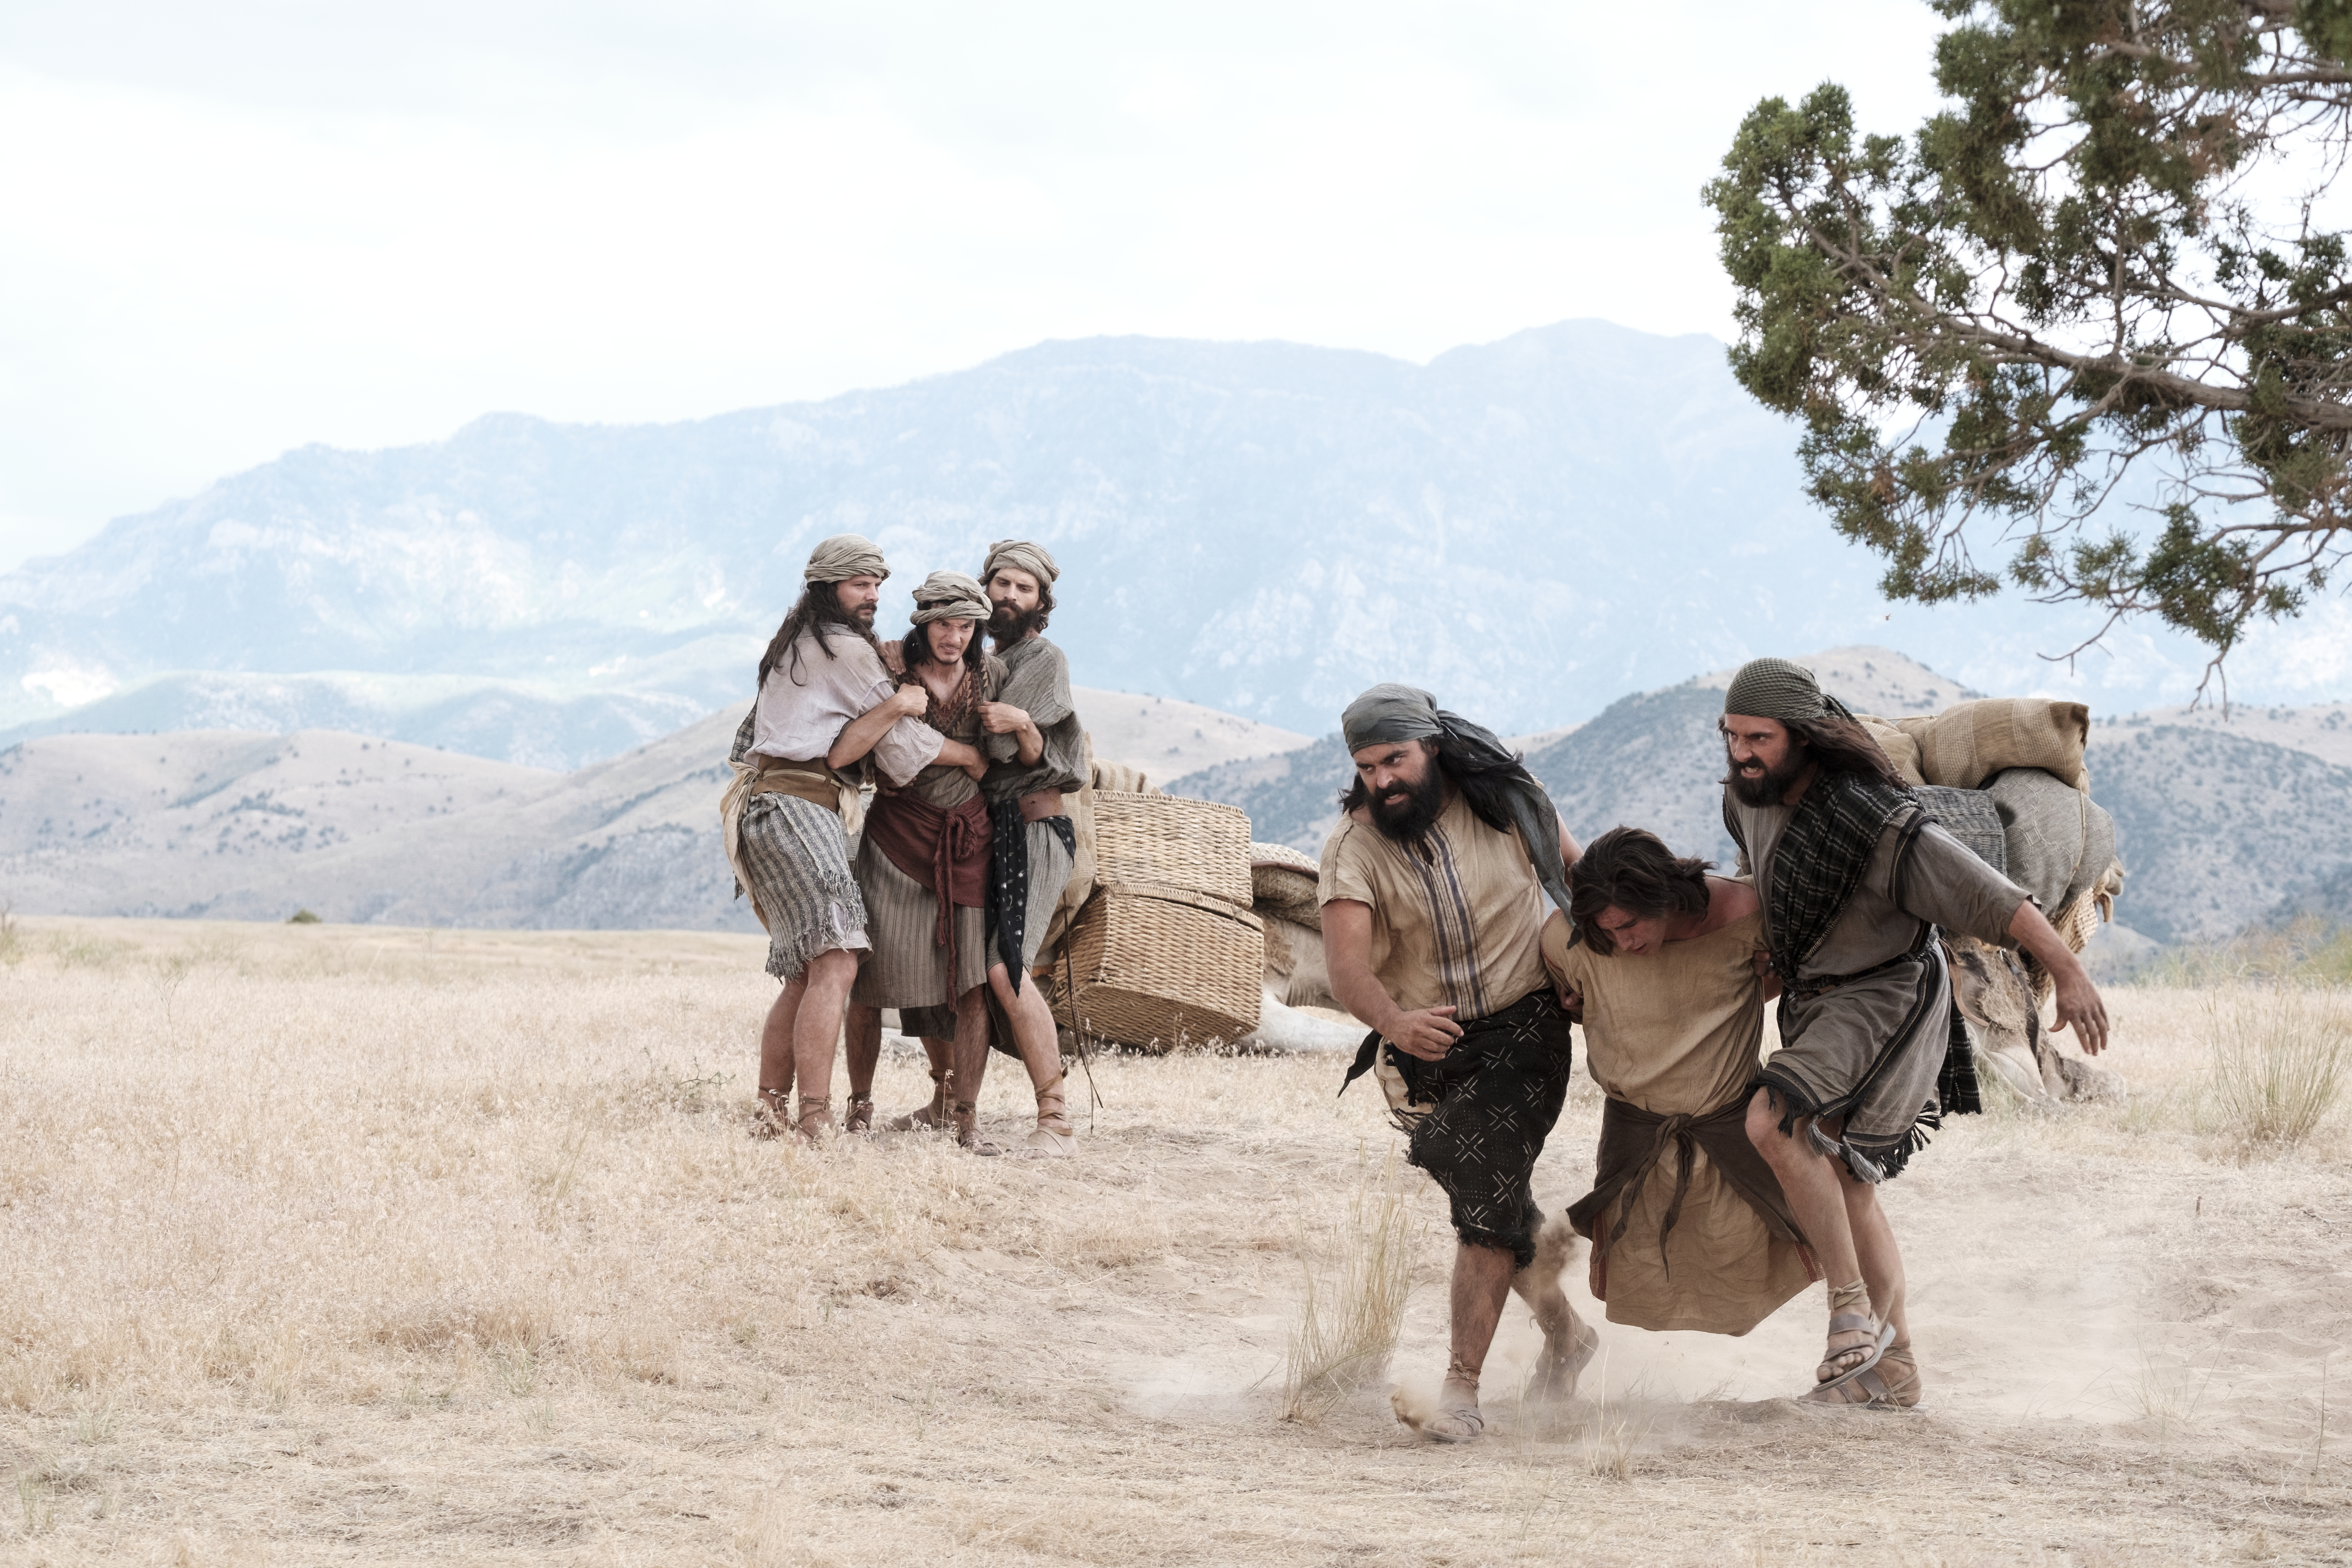 Laman and Lemuel bind and carry Nephi.